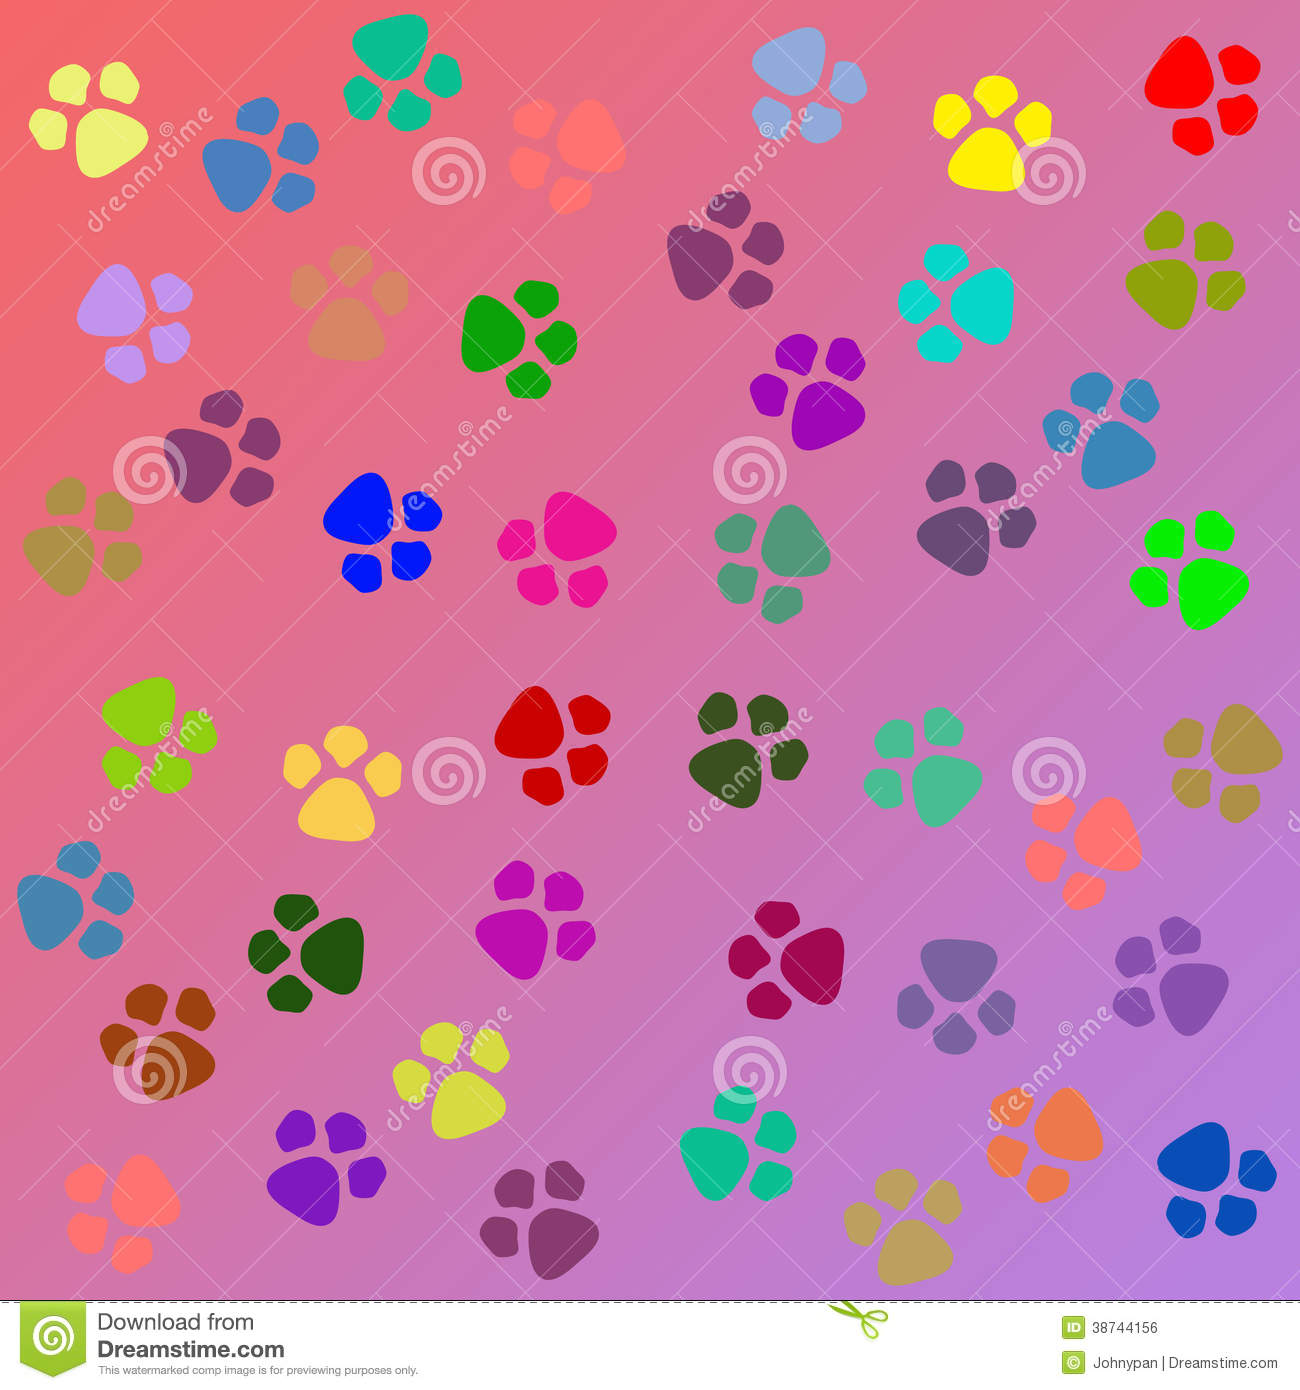 Wallpaper Perritos 3d Dog Paw Texture Royalty Free Stock Image Image 38744156